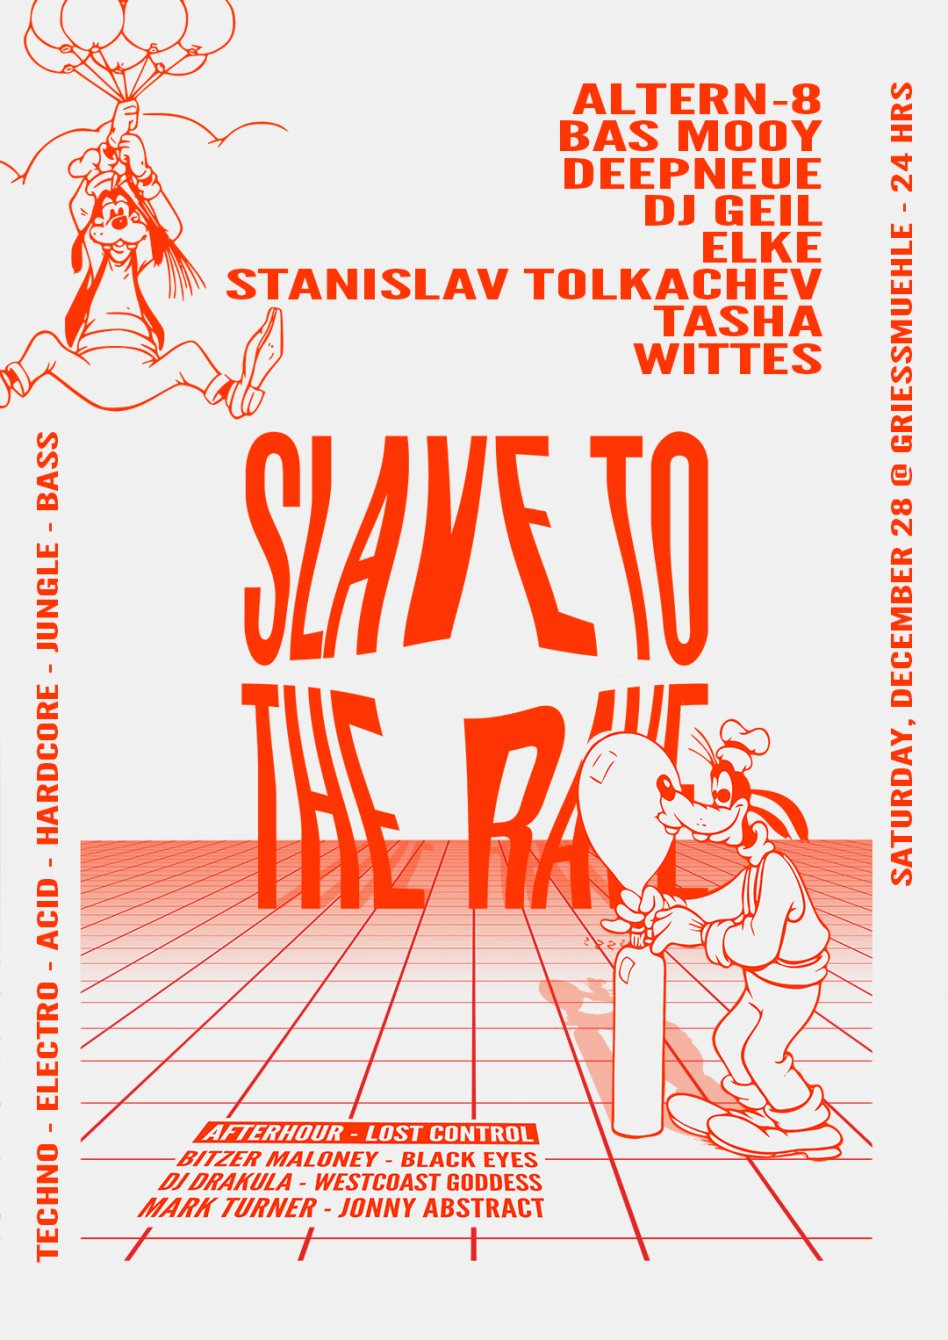 Slave To The Rave 18 with Bas Mooy, Stanislav Tolkachev, Altern8 & More - Flyer front